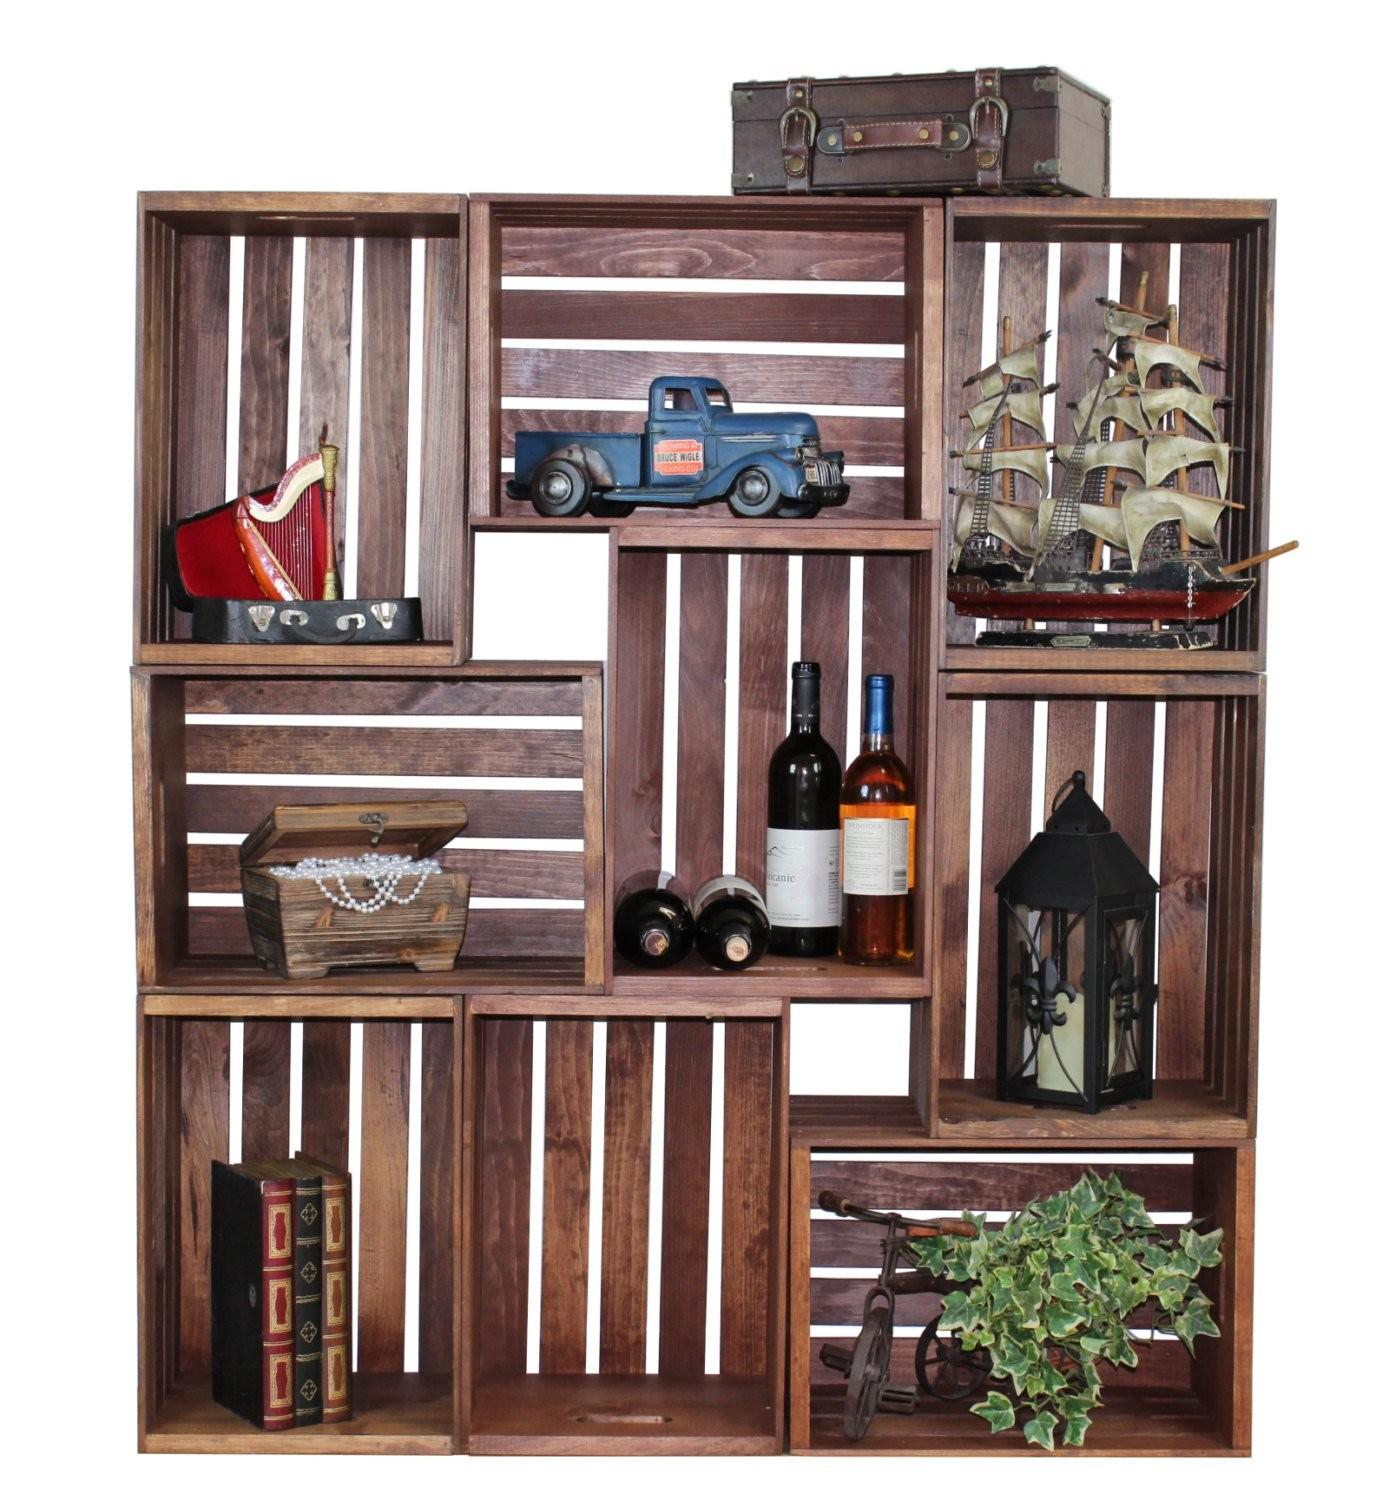 Handy Diy Projects Old Wooden Crates Style